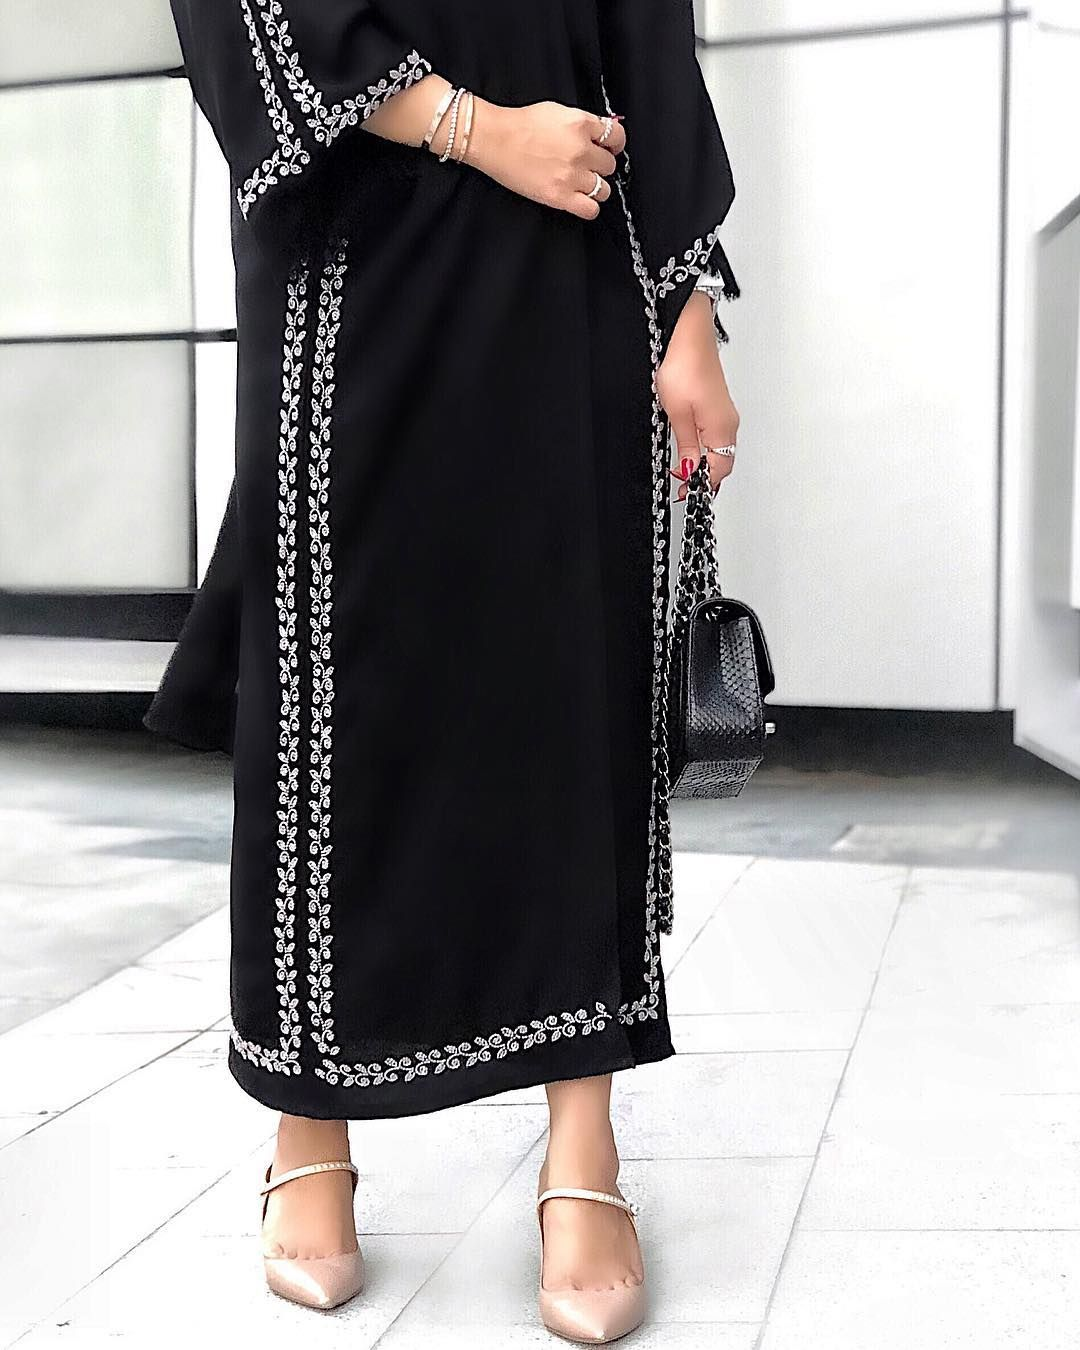 Image May Contain One Or More People And People Standing Abaya Fashion Abayas Fashion Fashion